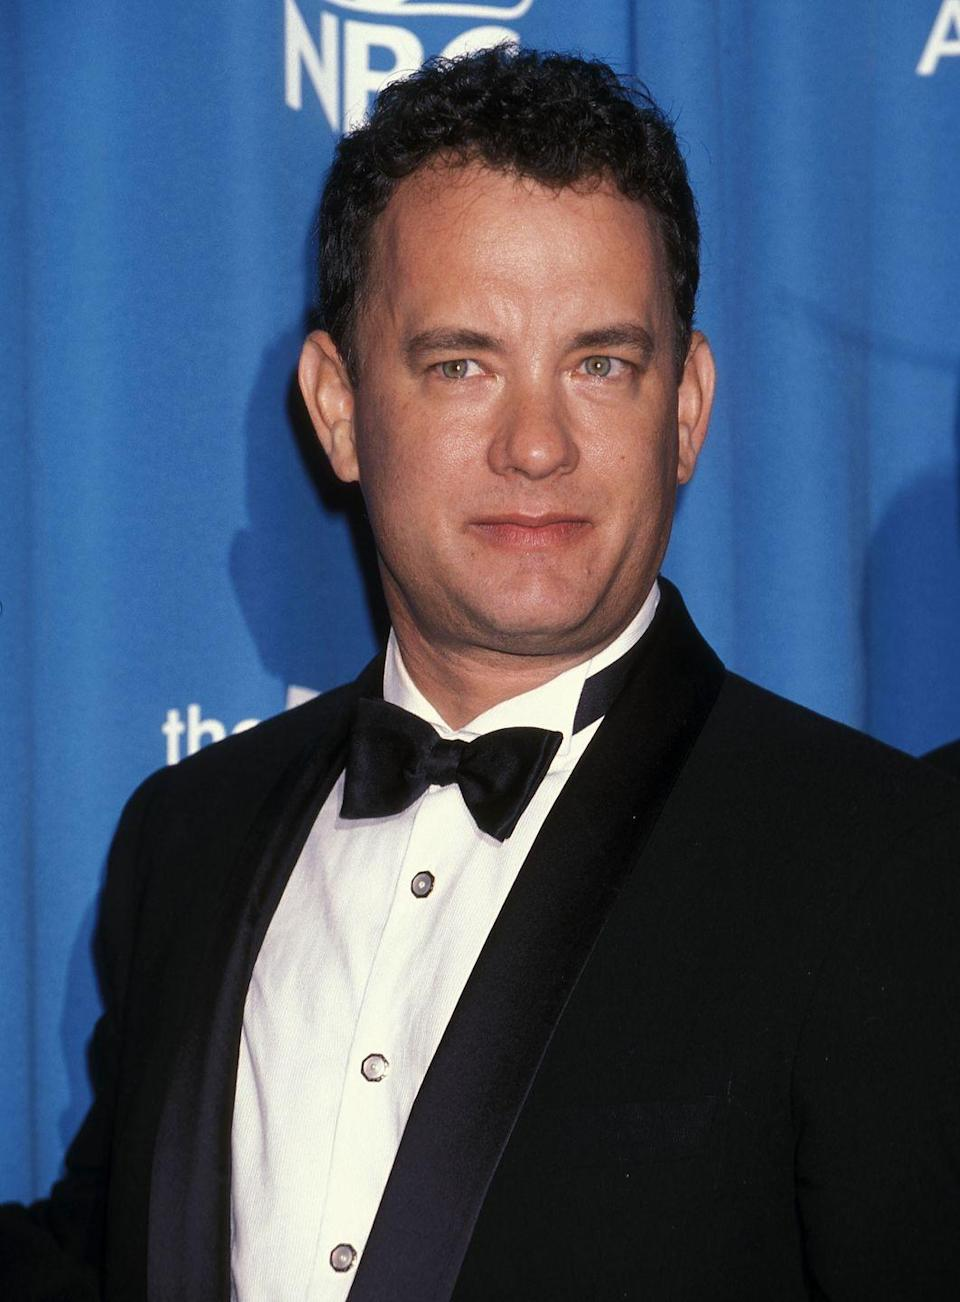 <p>Tom Hanks rose to fame in the early '80s and has since become one of the most versatile actors in Hollywood, pivoting from comedies like <em>Splash </em>to dramas like <em>Forrest Gump</em>. In 1998, Hanks not only got his handprint at the Chinese Theater in Hollywood, but he starred in <em>Saving Private Ryan.</em></p>